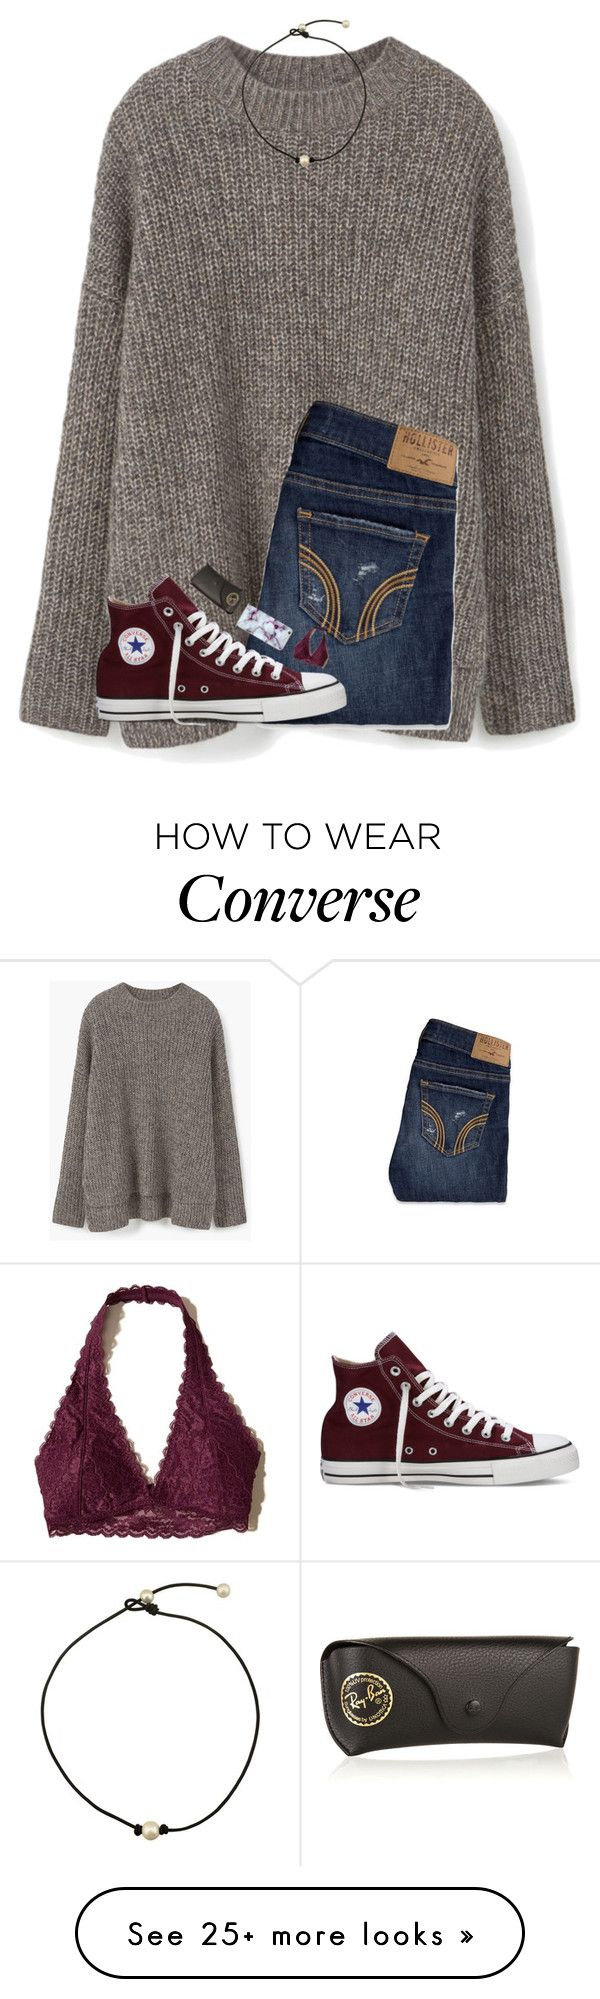 """going shopping✌(again)"" by hgw8503 on Polyvore featuring MANGO, Hollister Co., Converse and Ray-Ban"